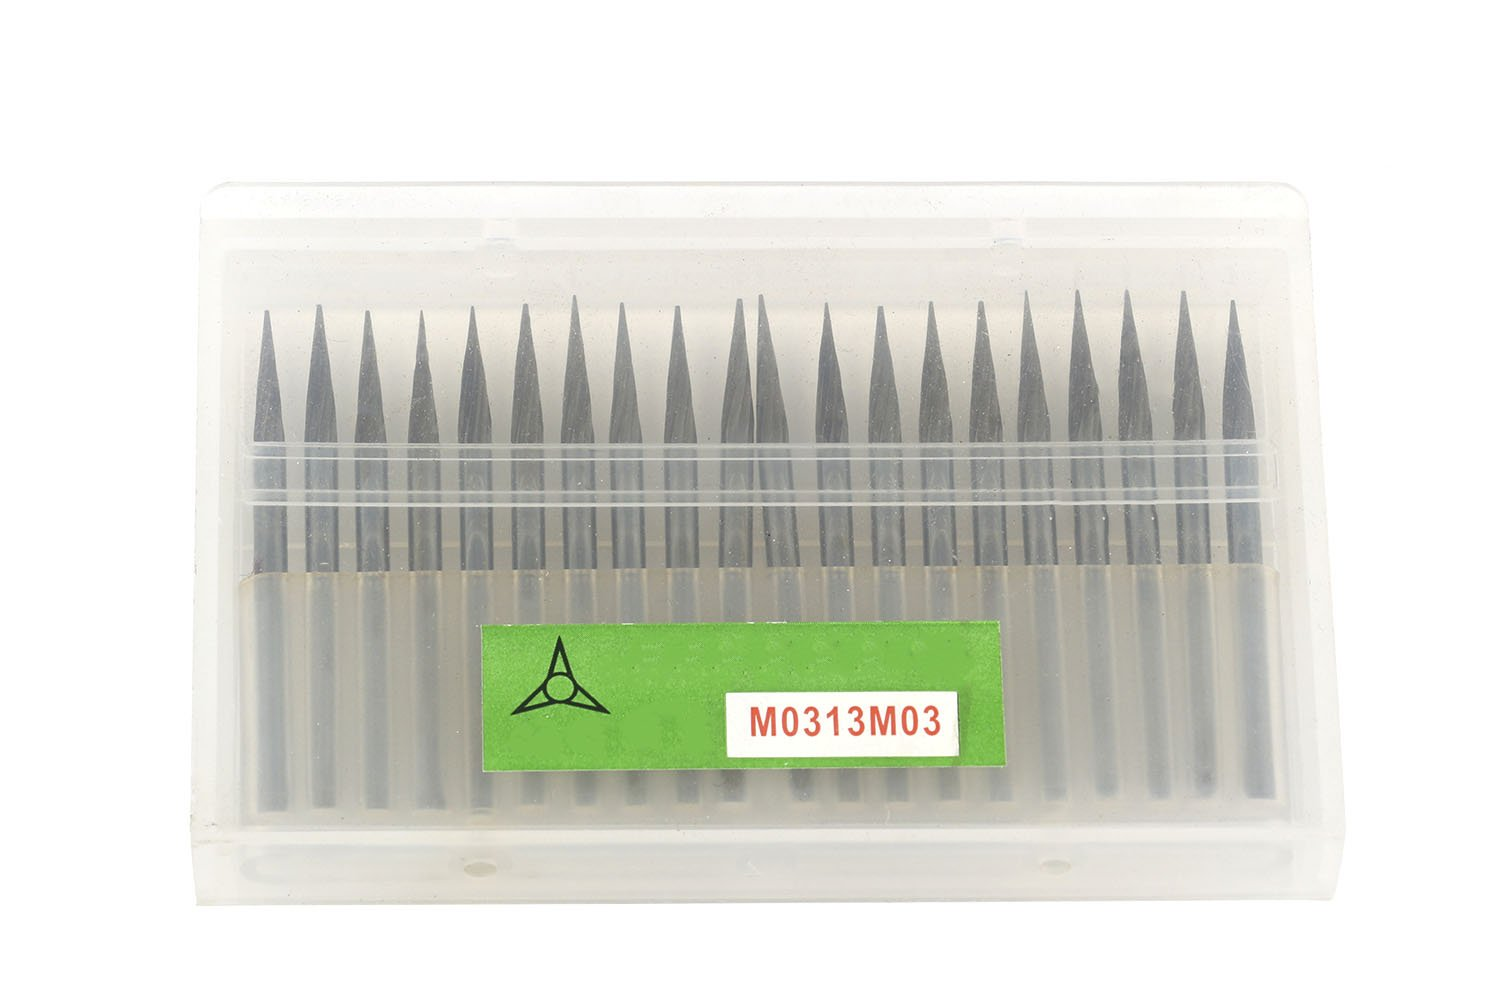 20Pcs Single Cut Conical Point Carbide Rotary Burr Bits Set 1/8'' Shank For Die Grinder by ZHONGYING (Image #3)